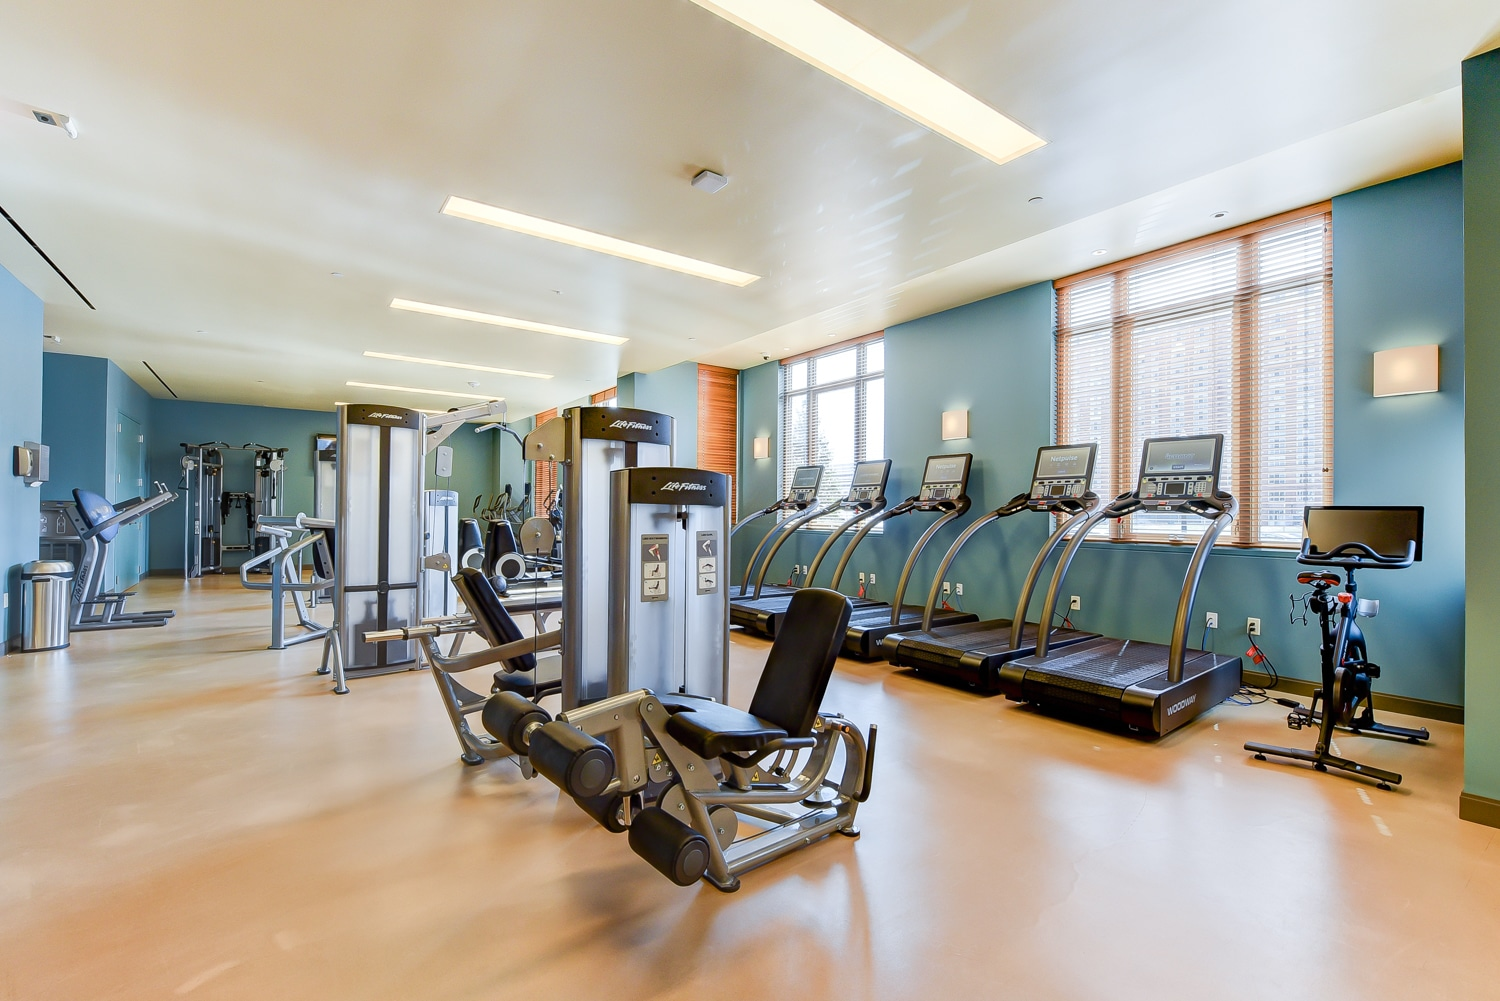 New-Park-Chelsea-fitness-center-woodway-treadmills